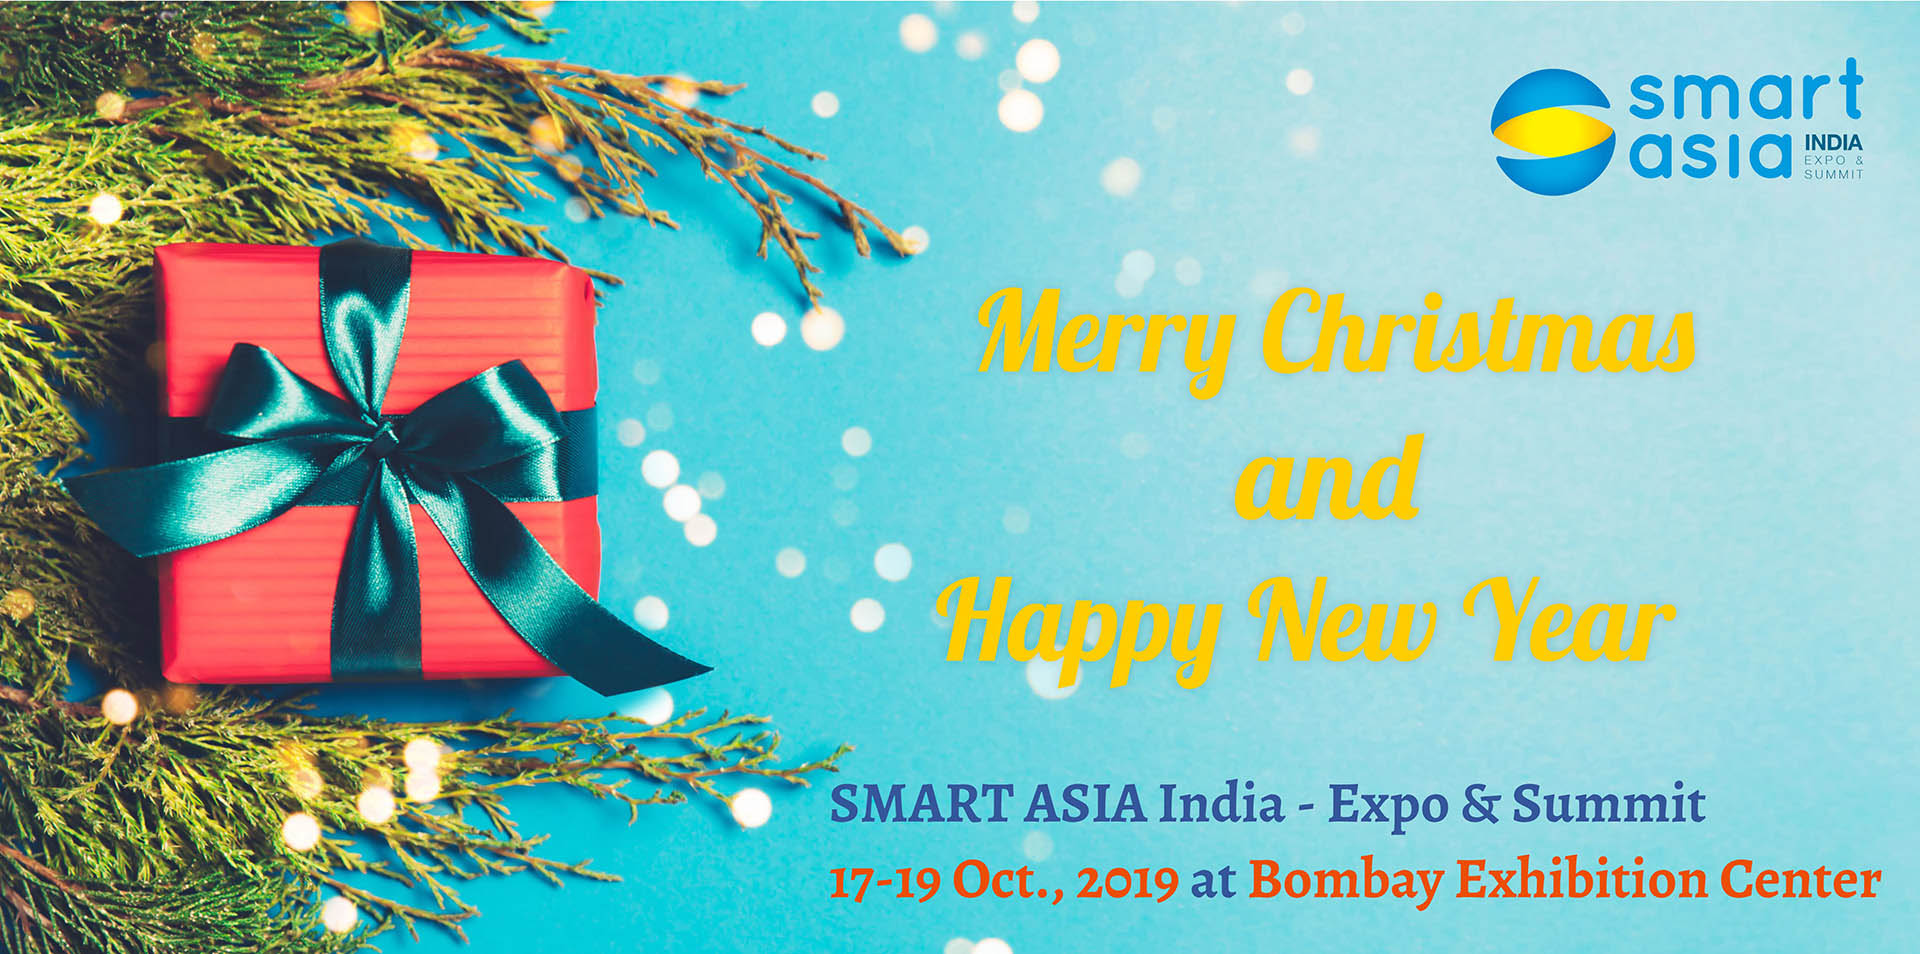 new year wishes smart asia india 2019 in mumbai